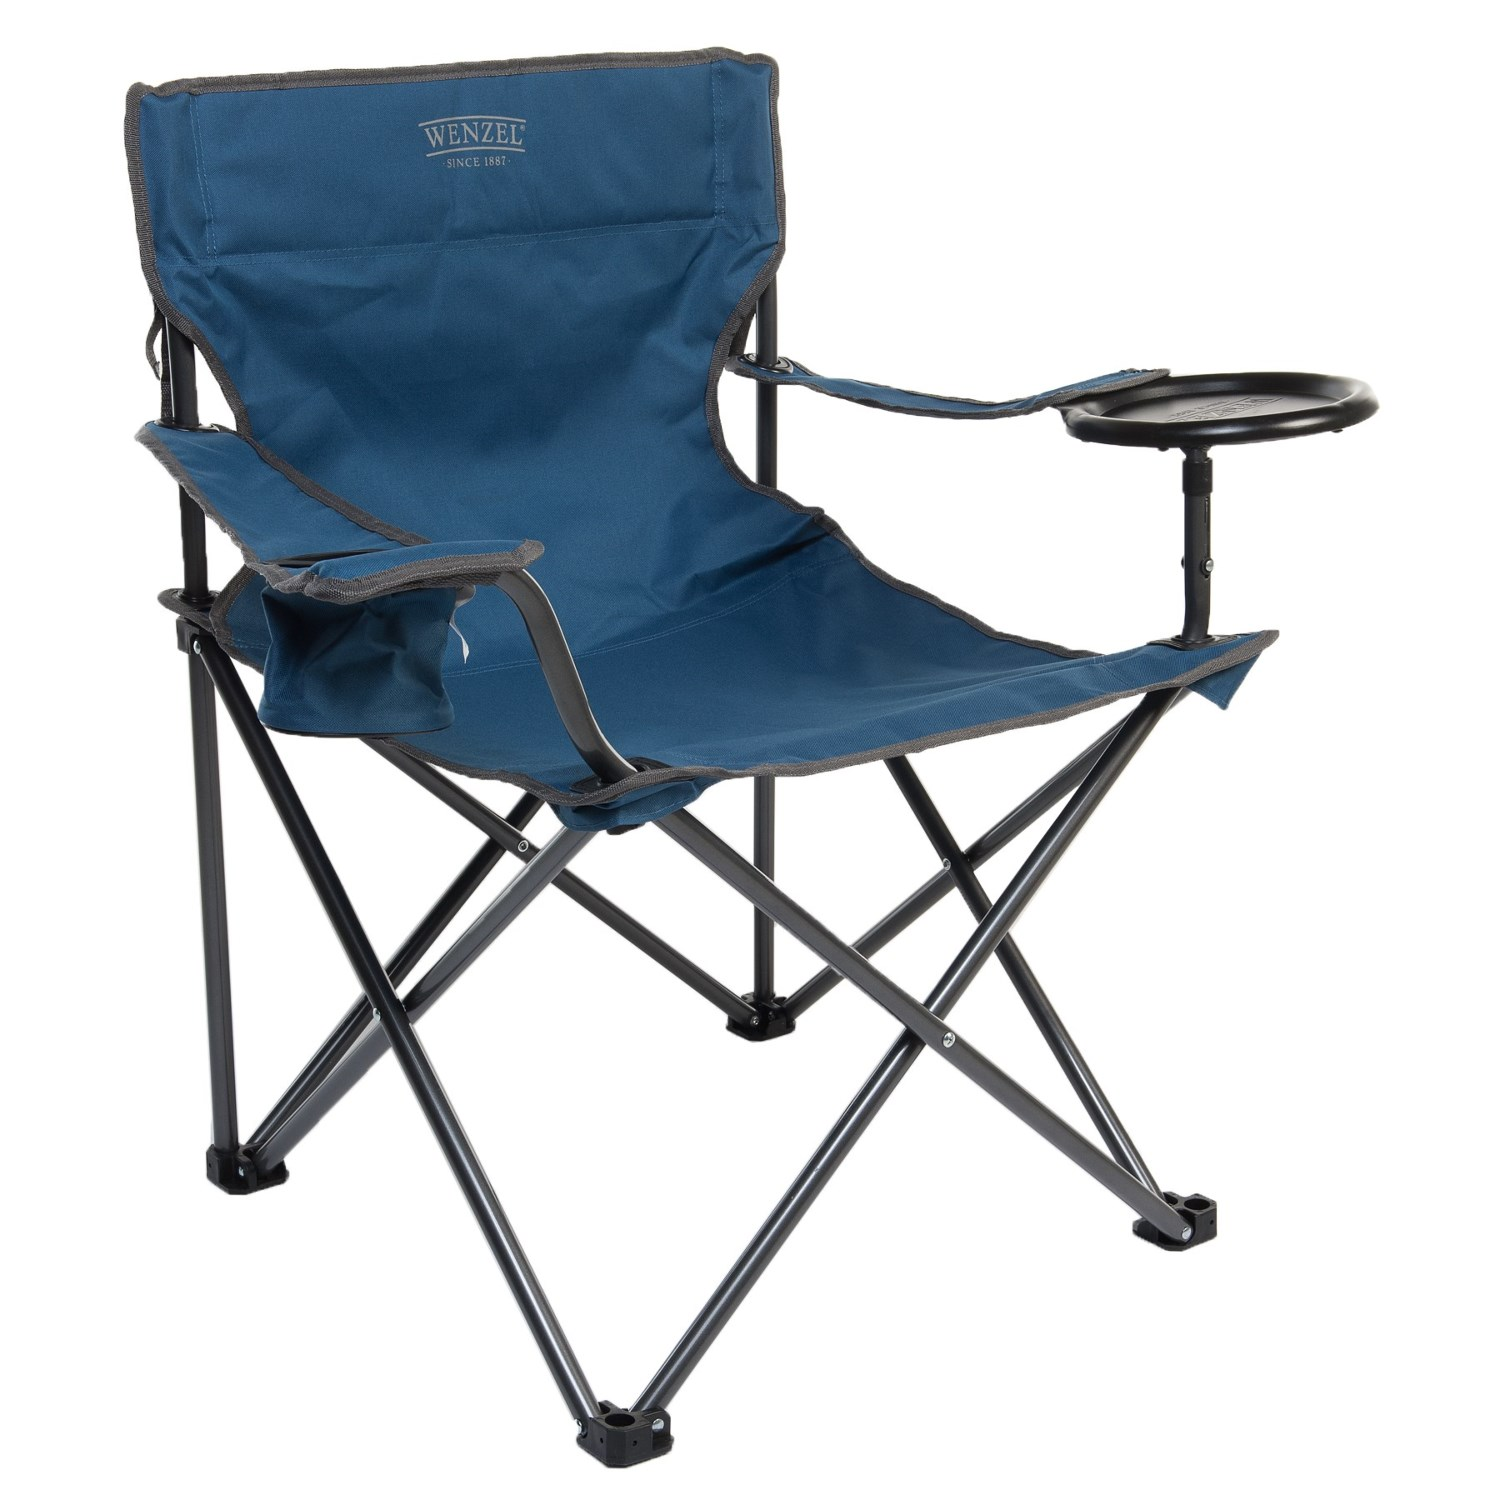 Wenzel Banquet Chair Xl Camping In Blue To Expand